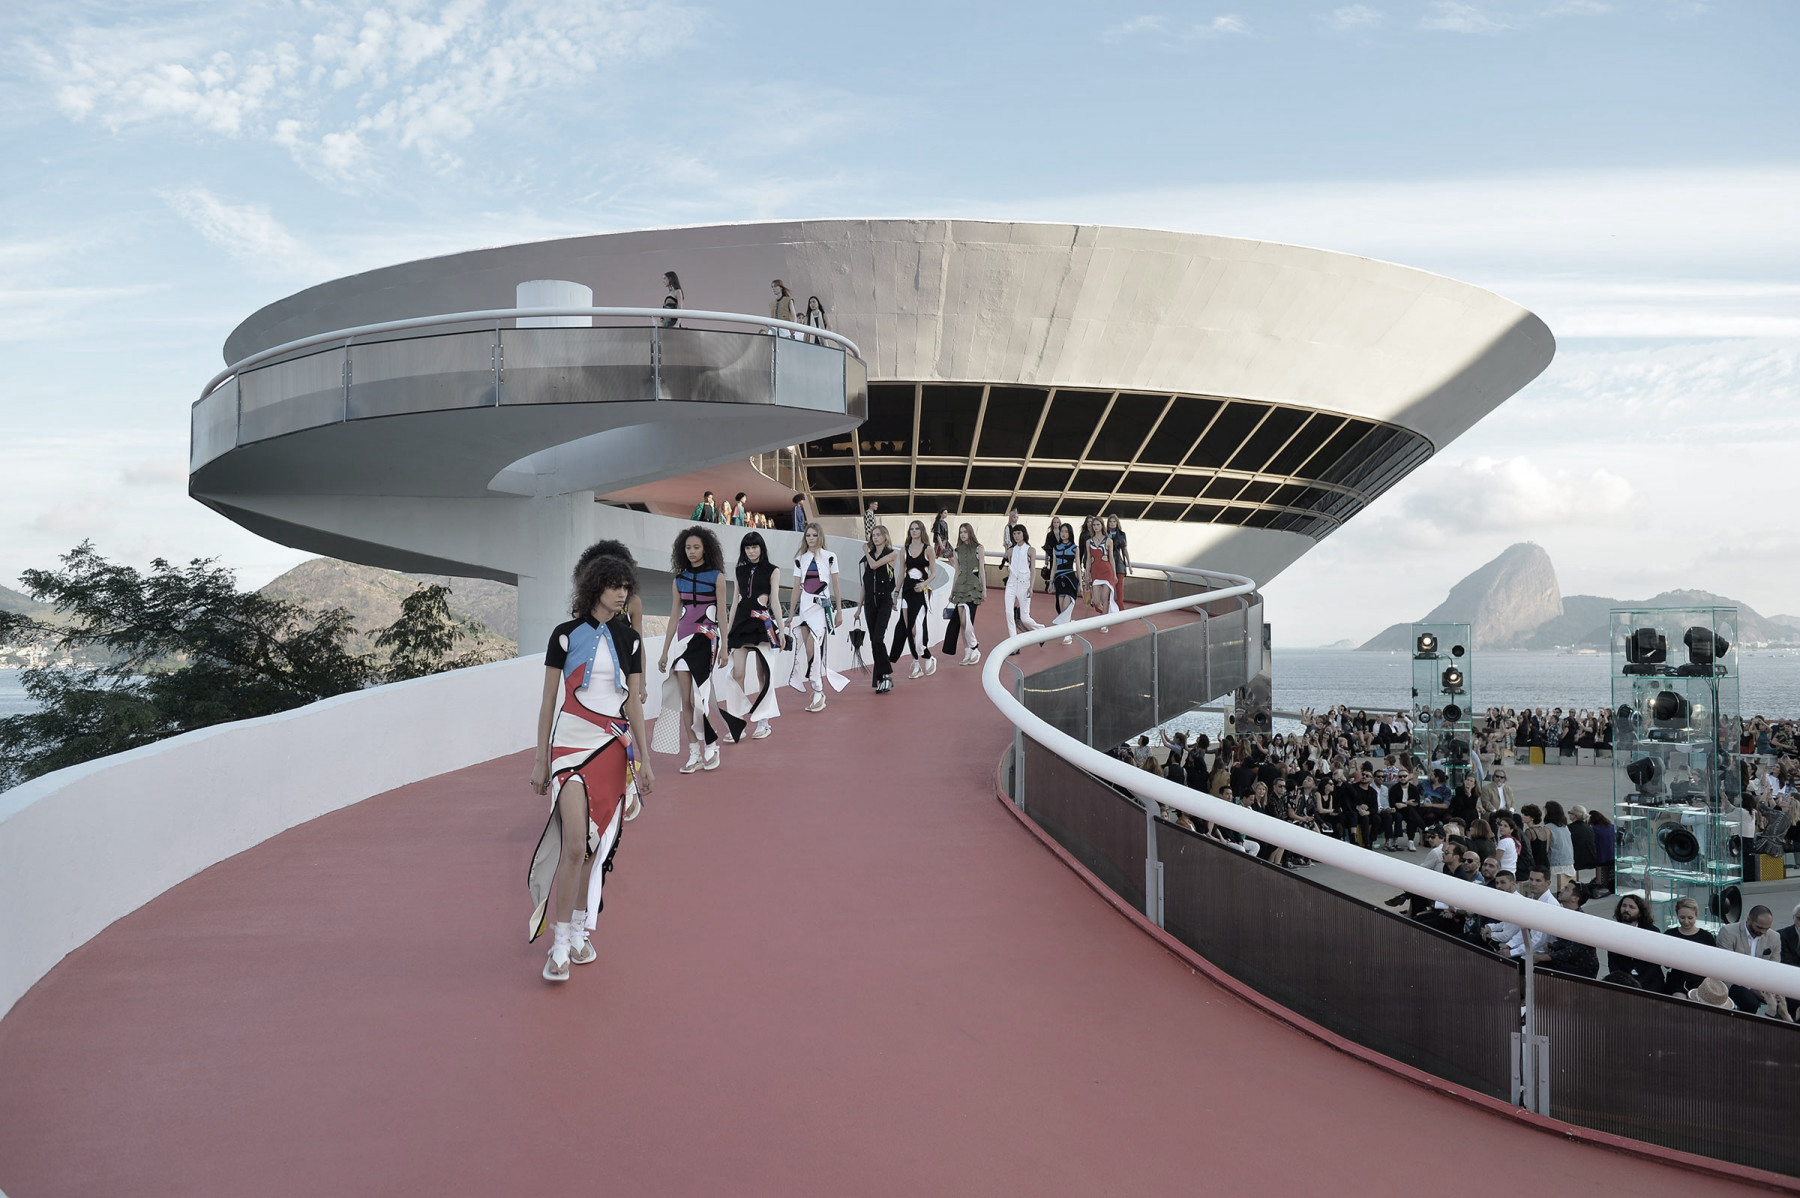 promenade architecturale fashion somethingfashion blogger spain valencia, architecture and fashion window dressing dior chanel catwalks niemeyer karl lagerfeld